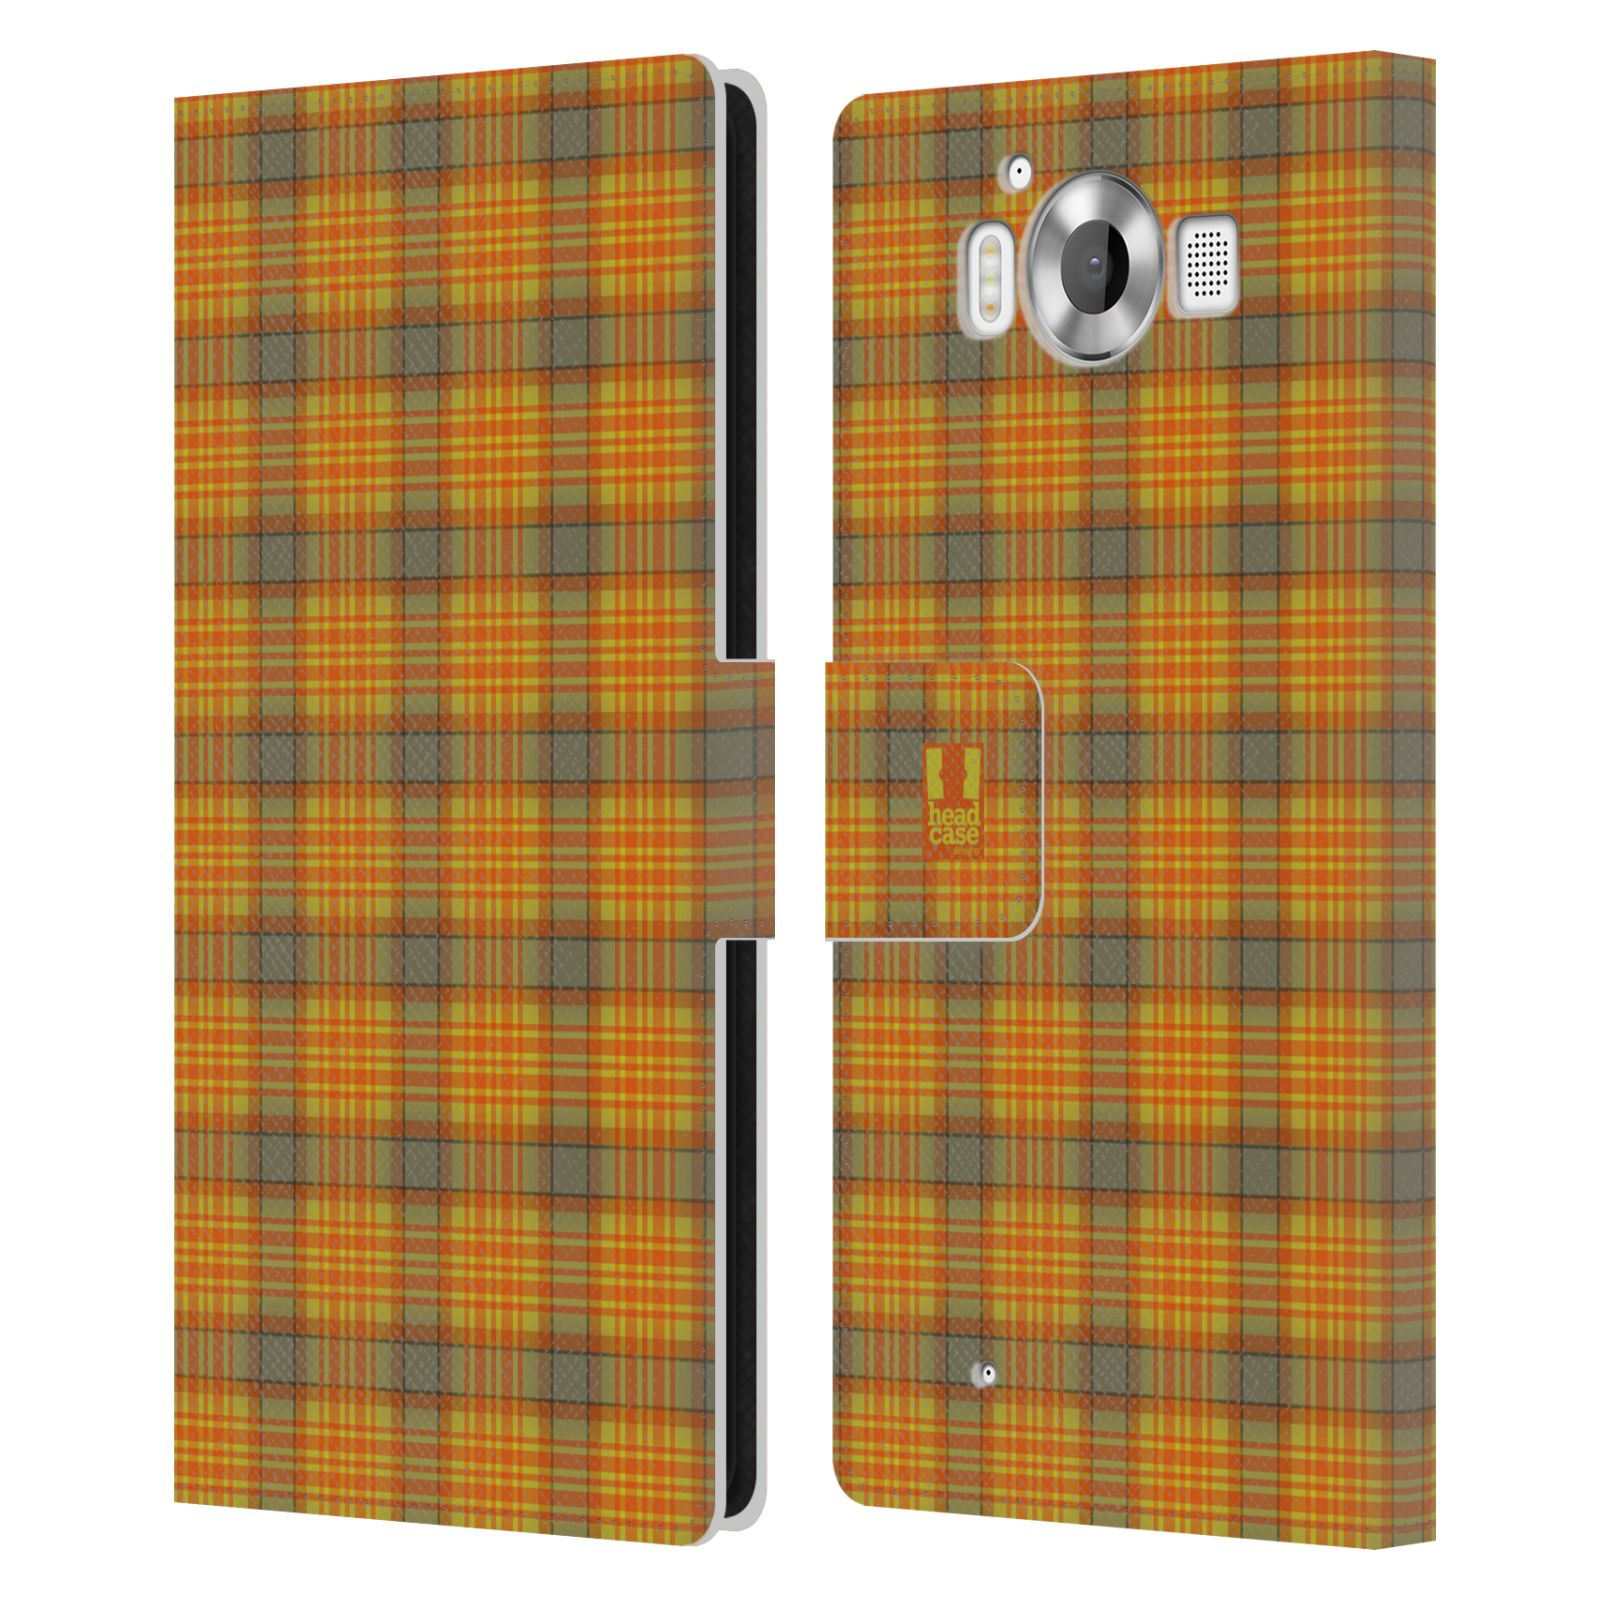 Checkered Cover Cookbook ~ Head case designs plaid leather book wallet cover for